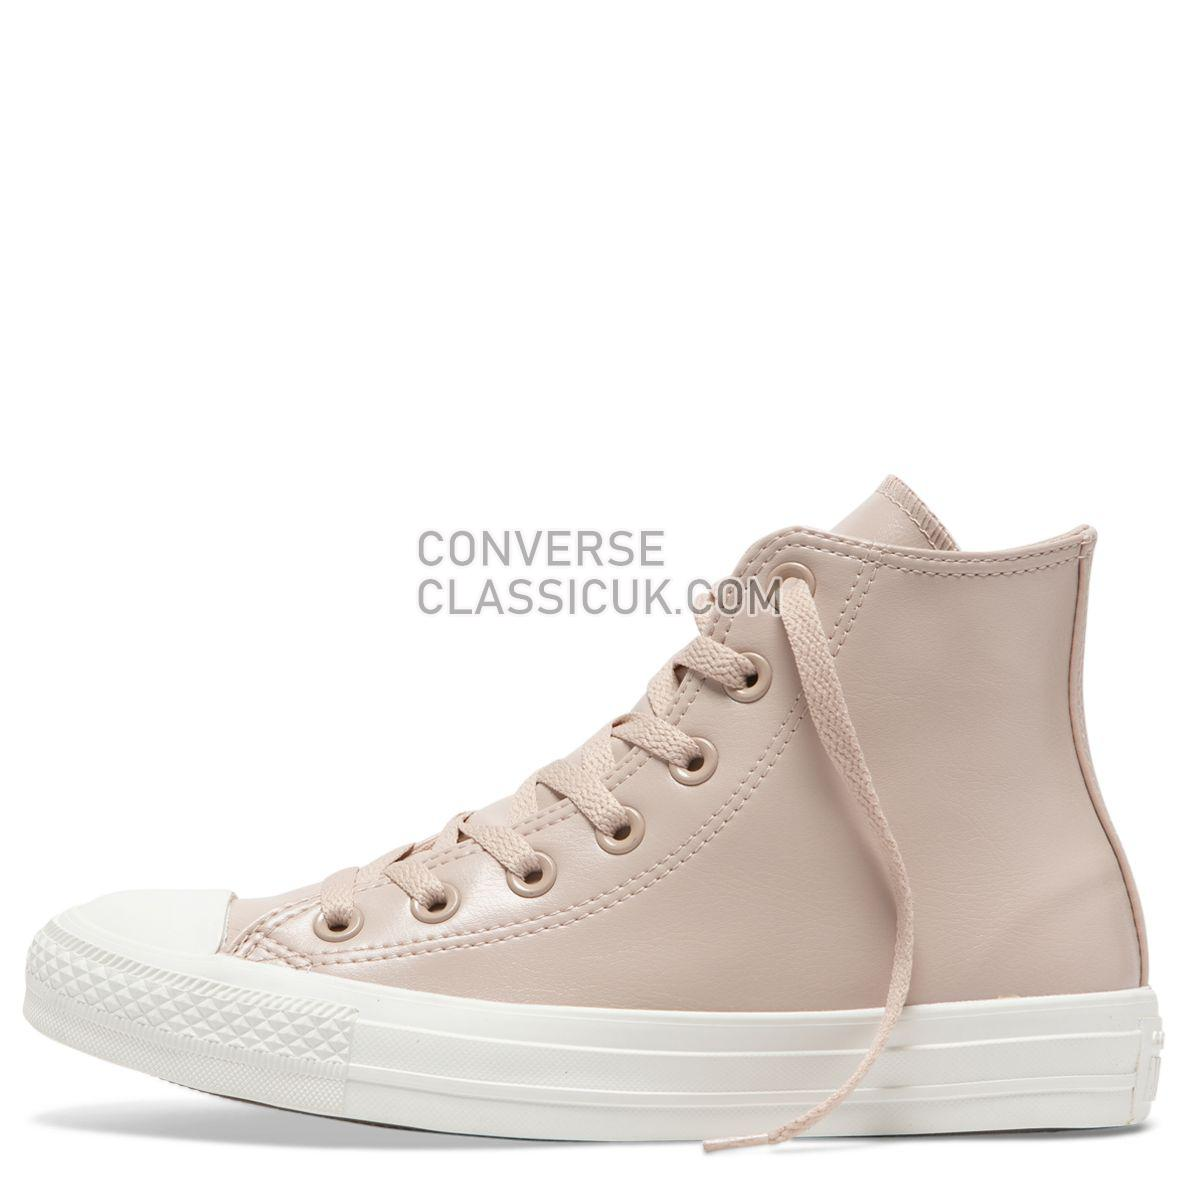 Converse Chuck Taylor All Star Craft SL High Top Particle Beige Womens 564398 Particle Beige/Particle Beige/Vintage White Shoes